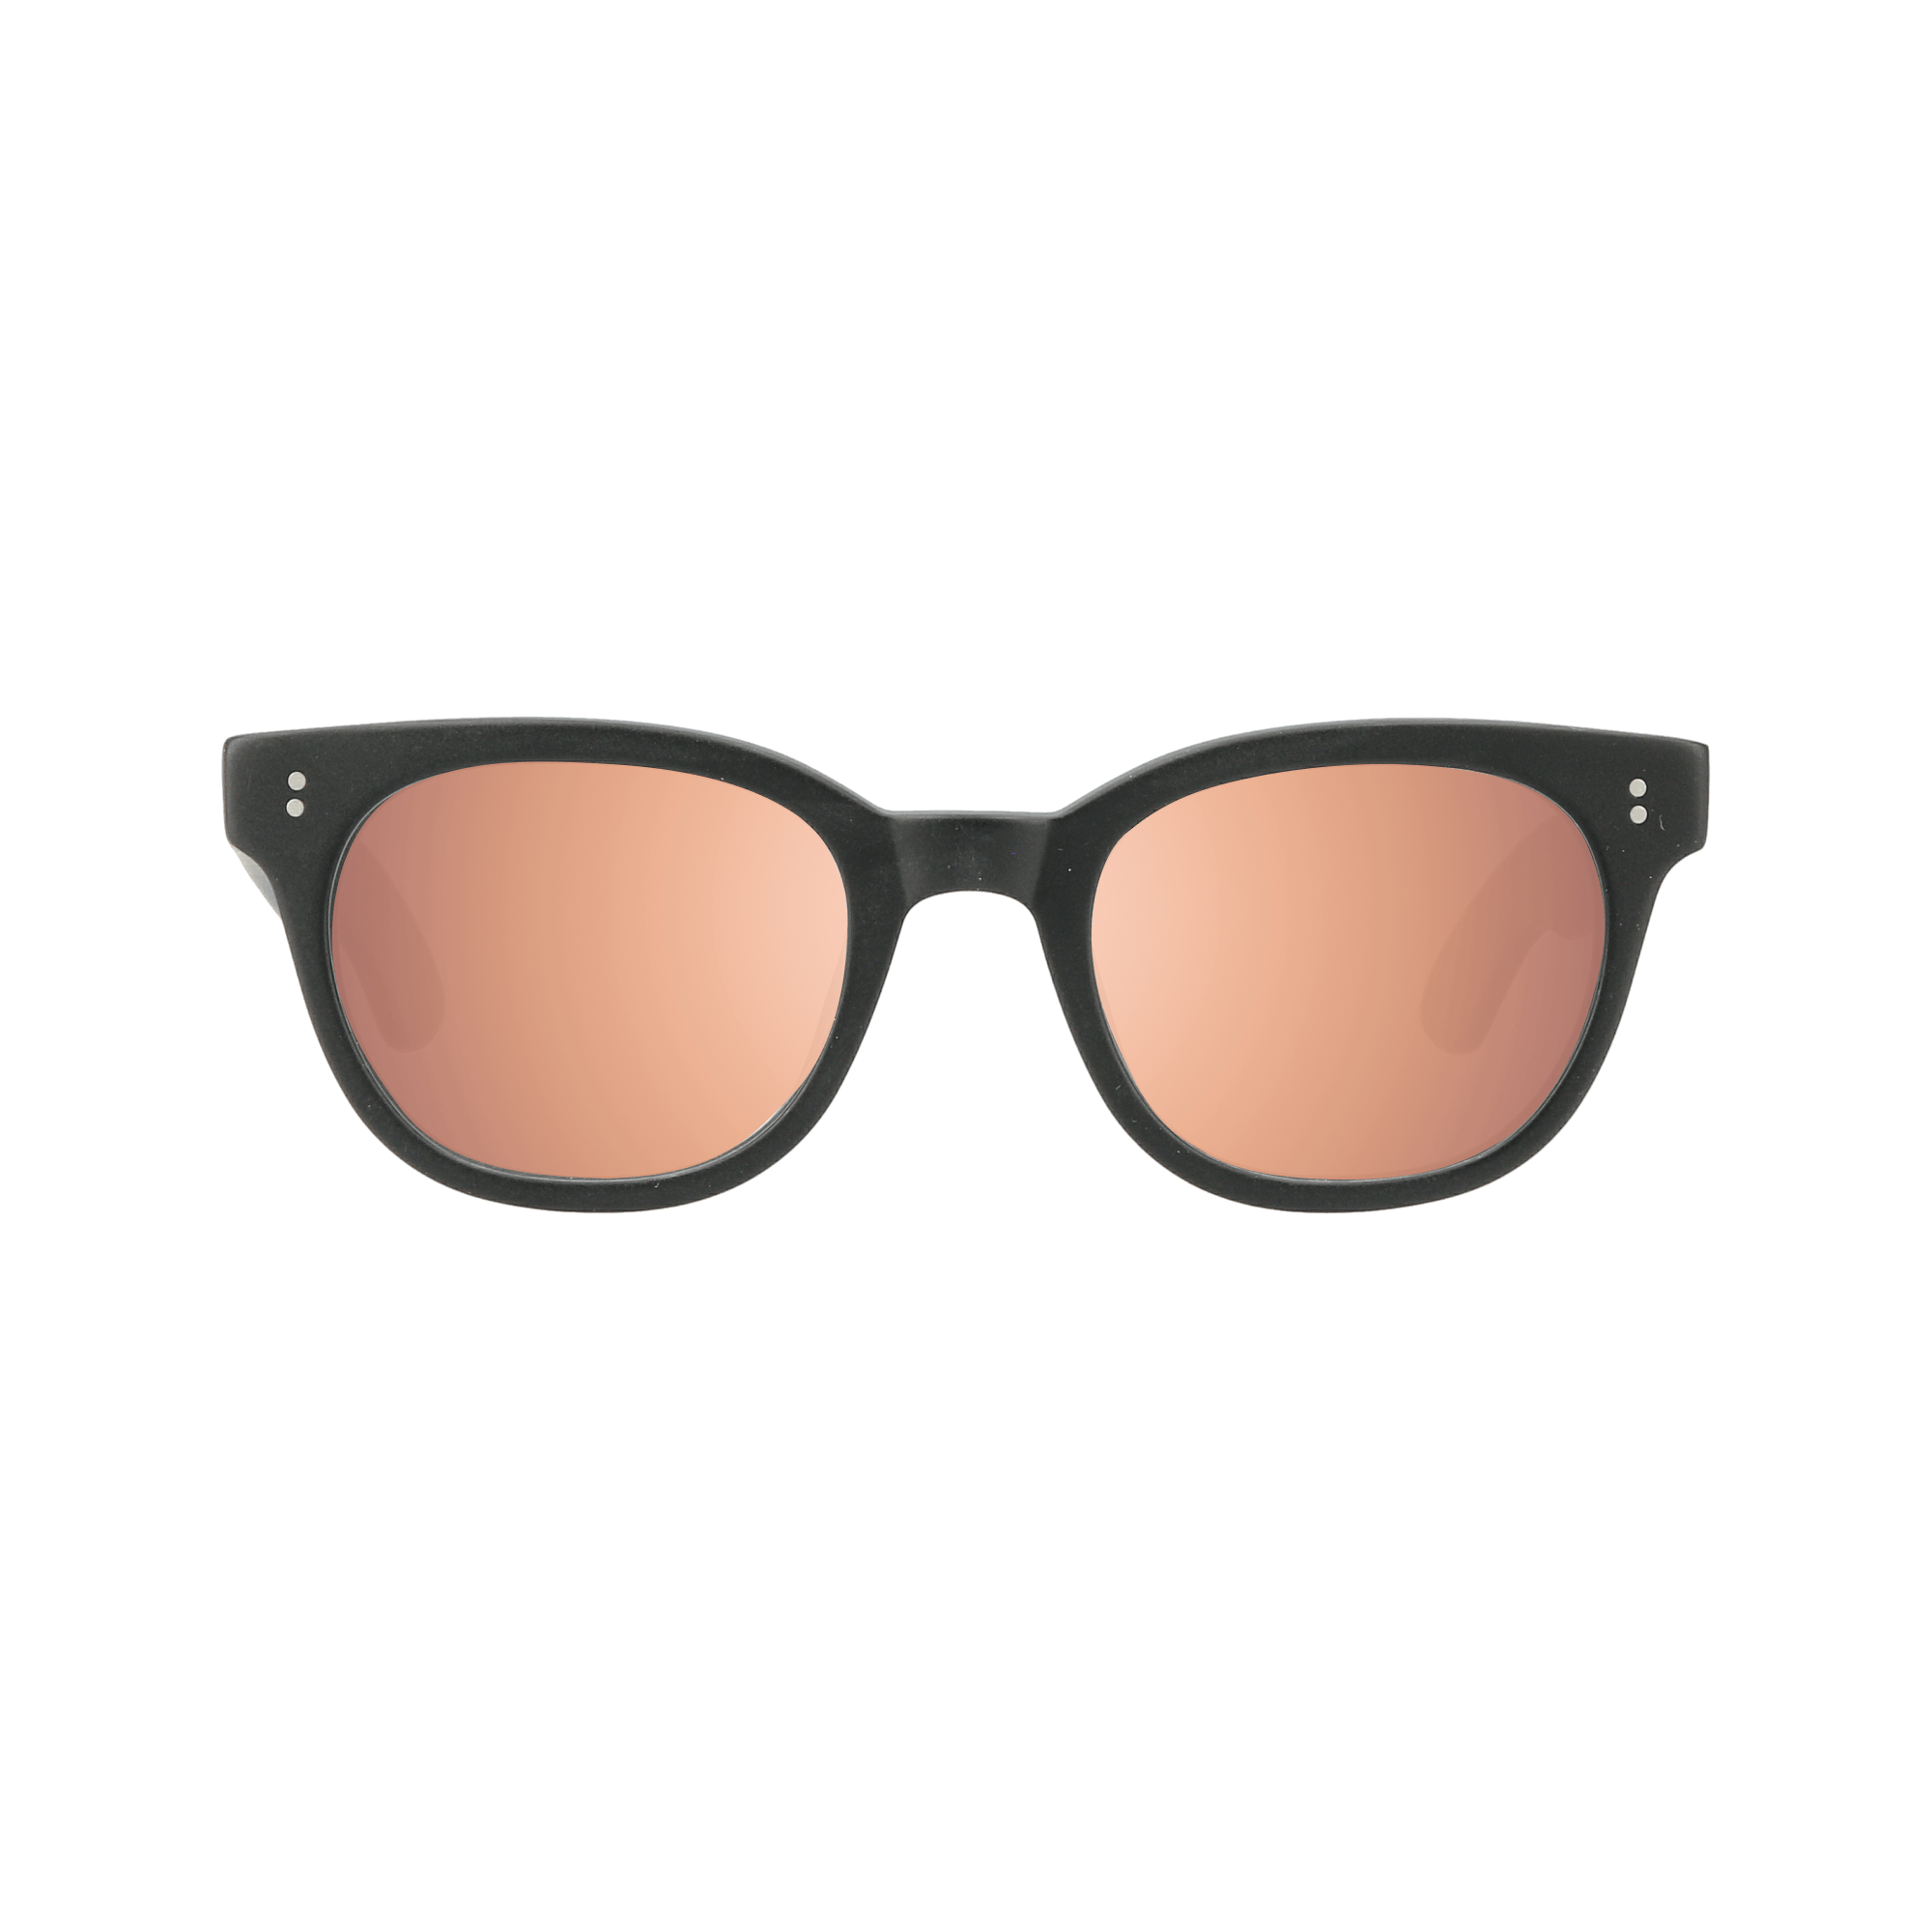 ACUBA - MATTE BLACK SUNGLASSES SAINT REETS